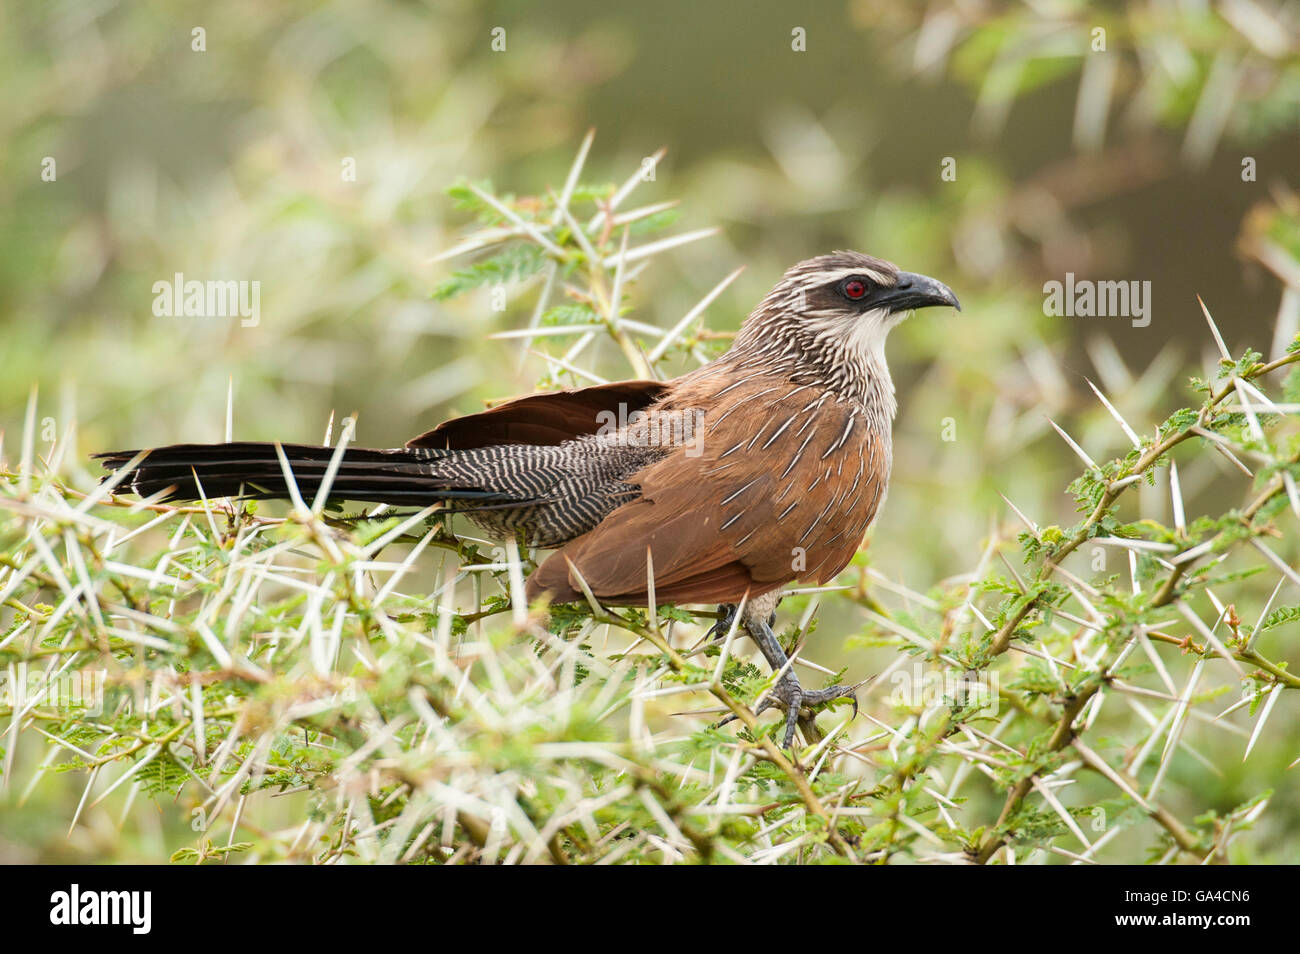 White-browed Coucal (Centropus superciliosus), Lake Manyara National Park, Tanzania - Stock Image